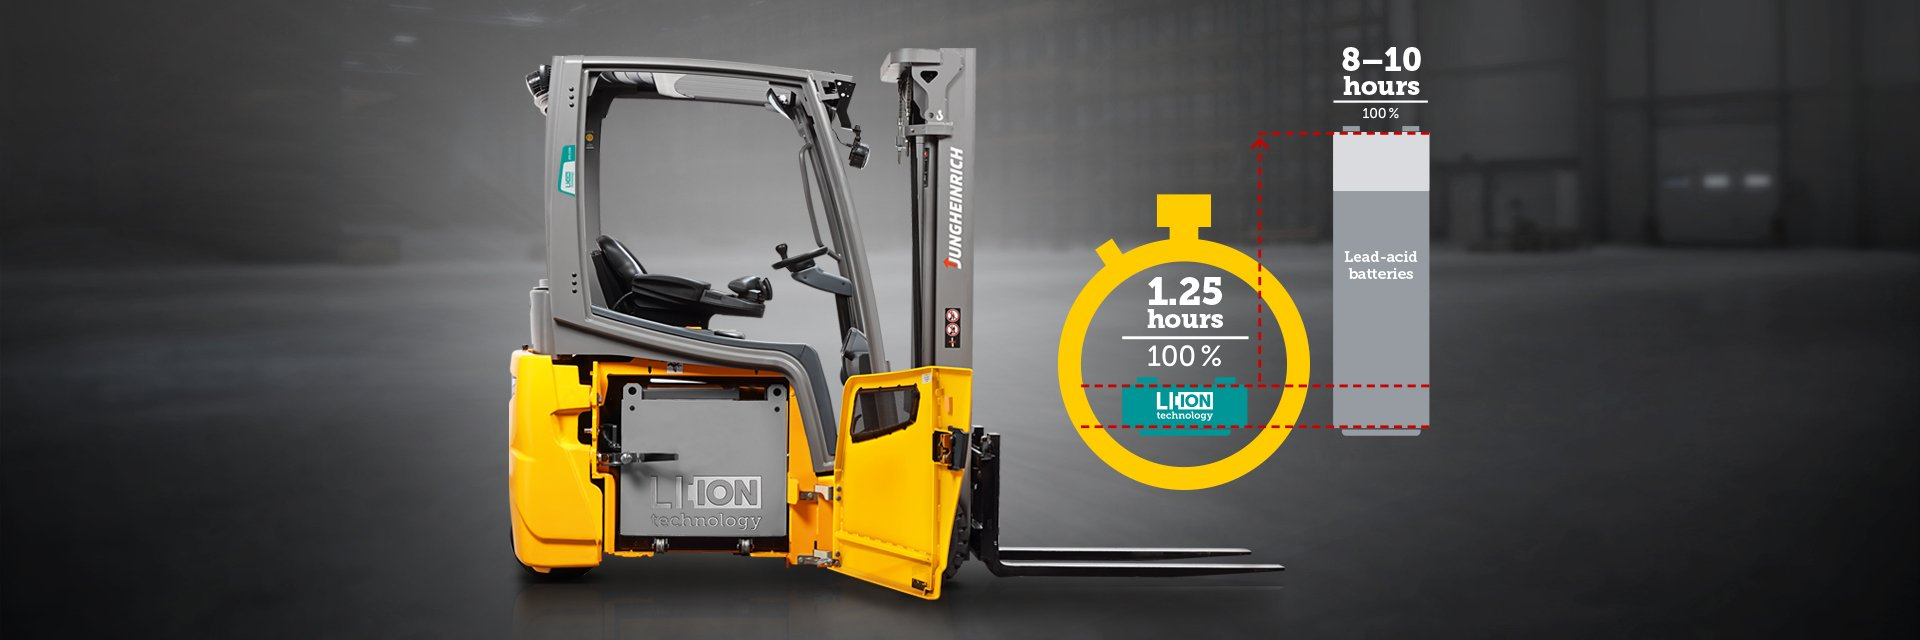 Lithium-ion technology from Jungheinrich